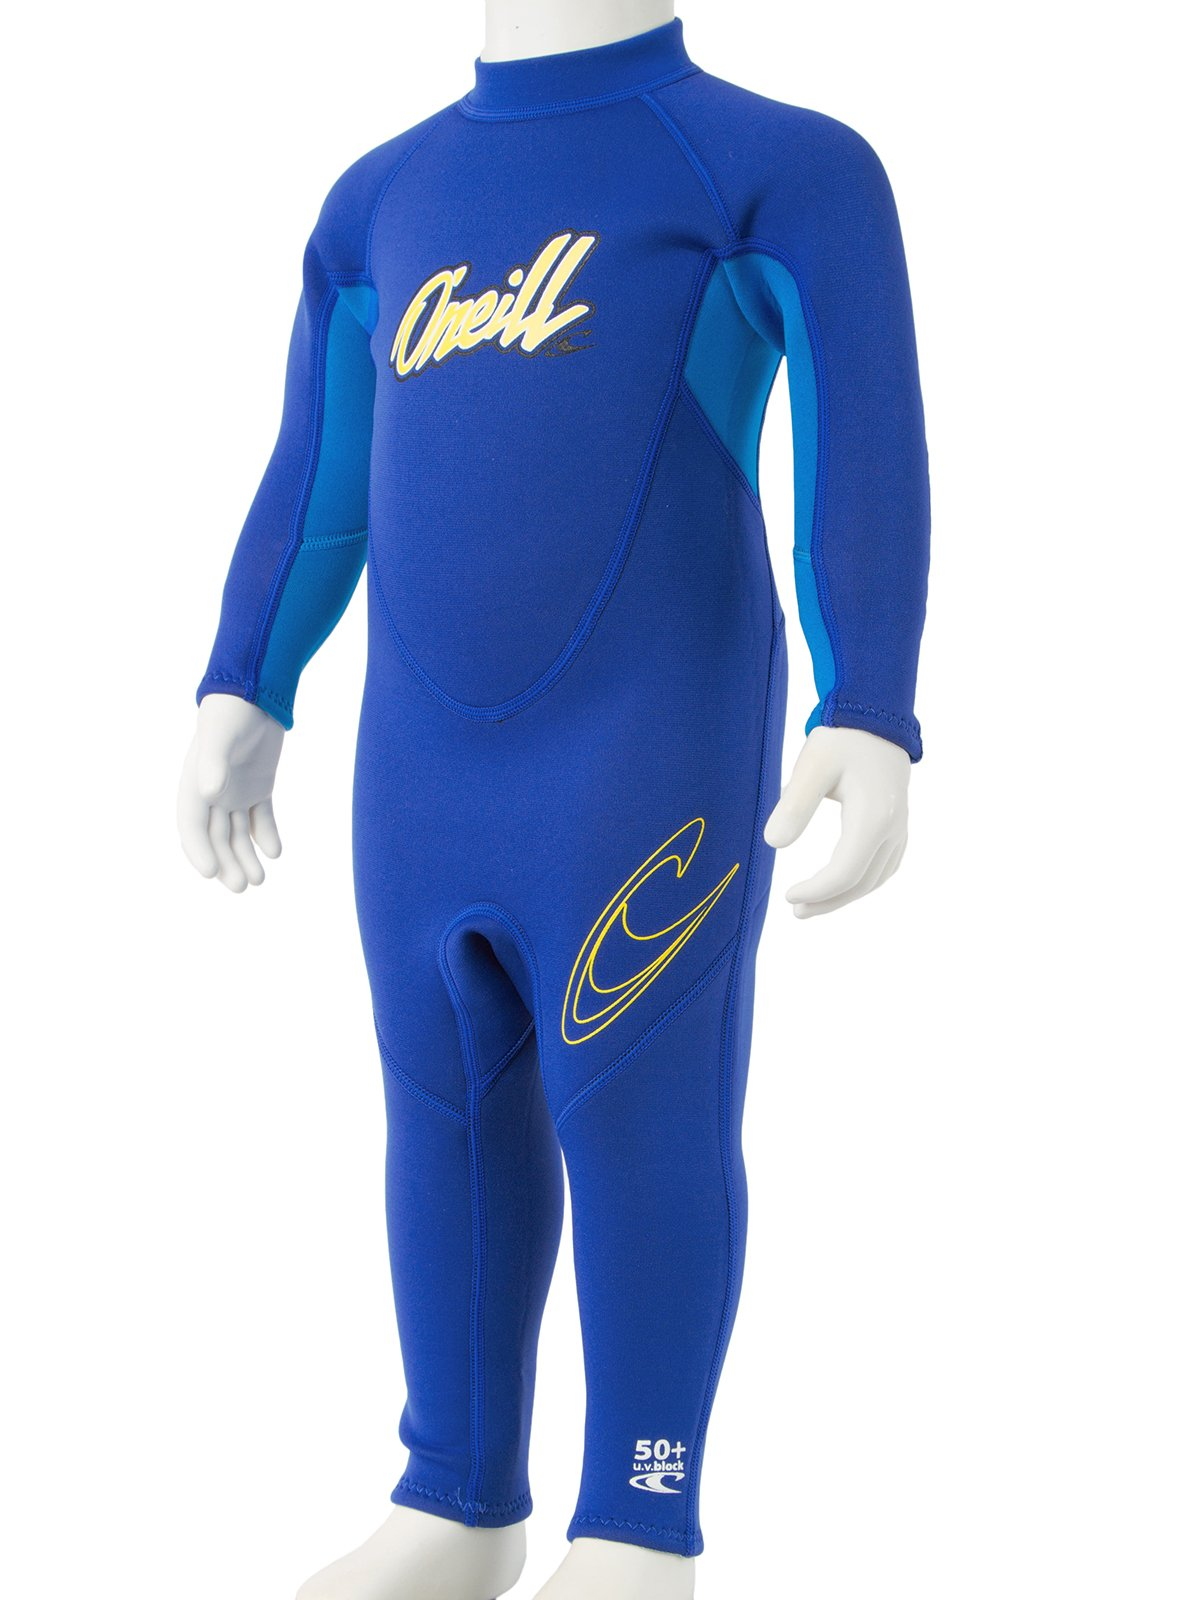 O'Neill Reactor Toddler Full Wetsuit 6 Pacific/Brite Blue/Yellow (4629B) by O'Neill Wetsuits